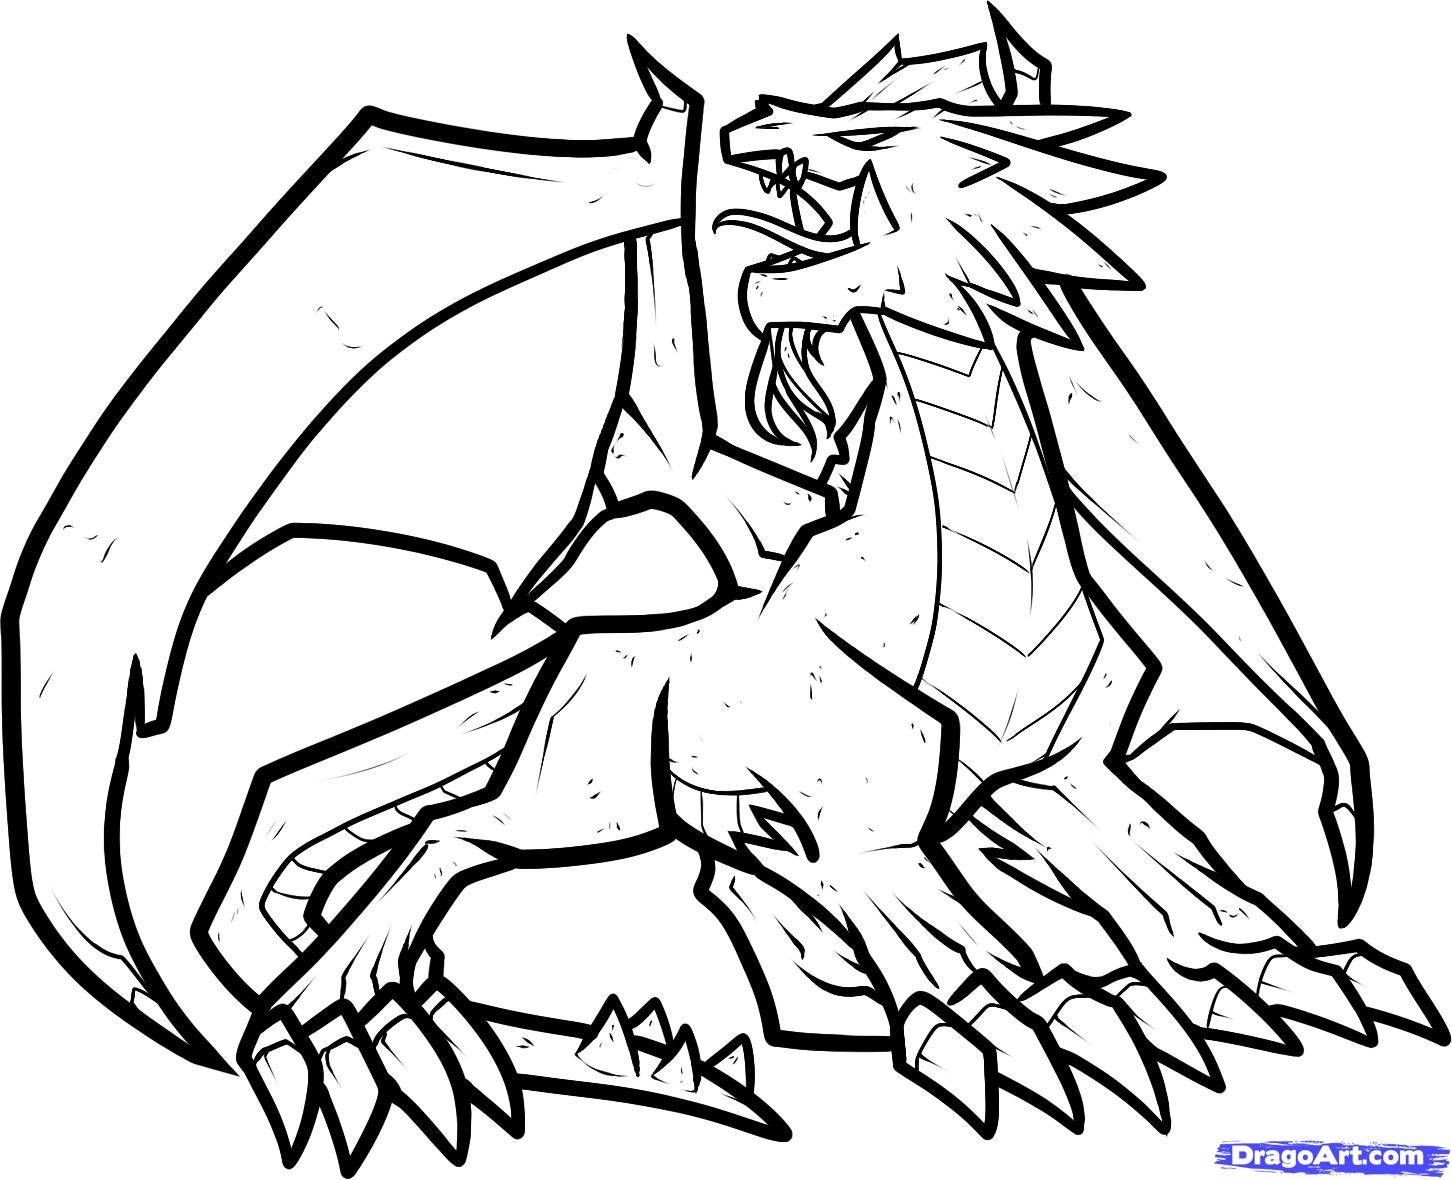 1452x1180 How To Draw A Fire Dragon, Fire Dragon, Red Dragon Step 9